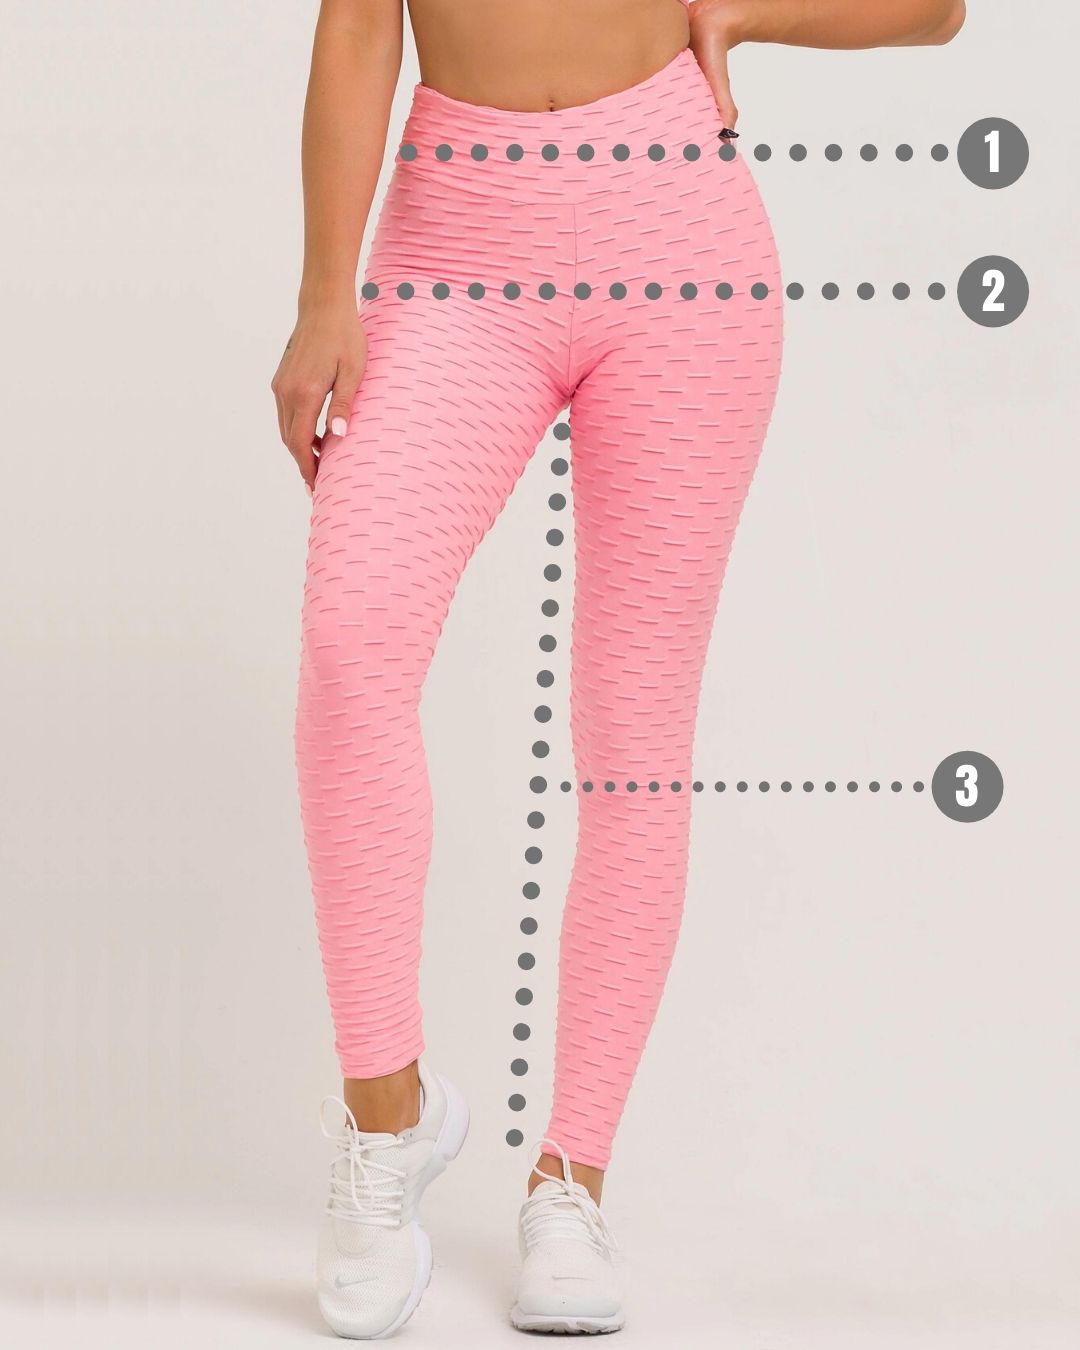 Size guide - Anti-cellulite Leggings BurnFit